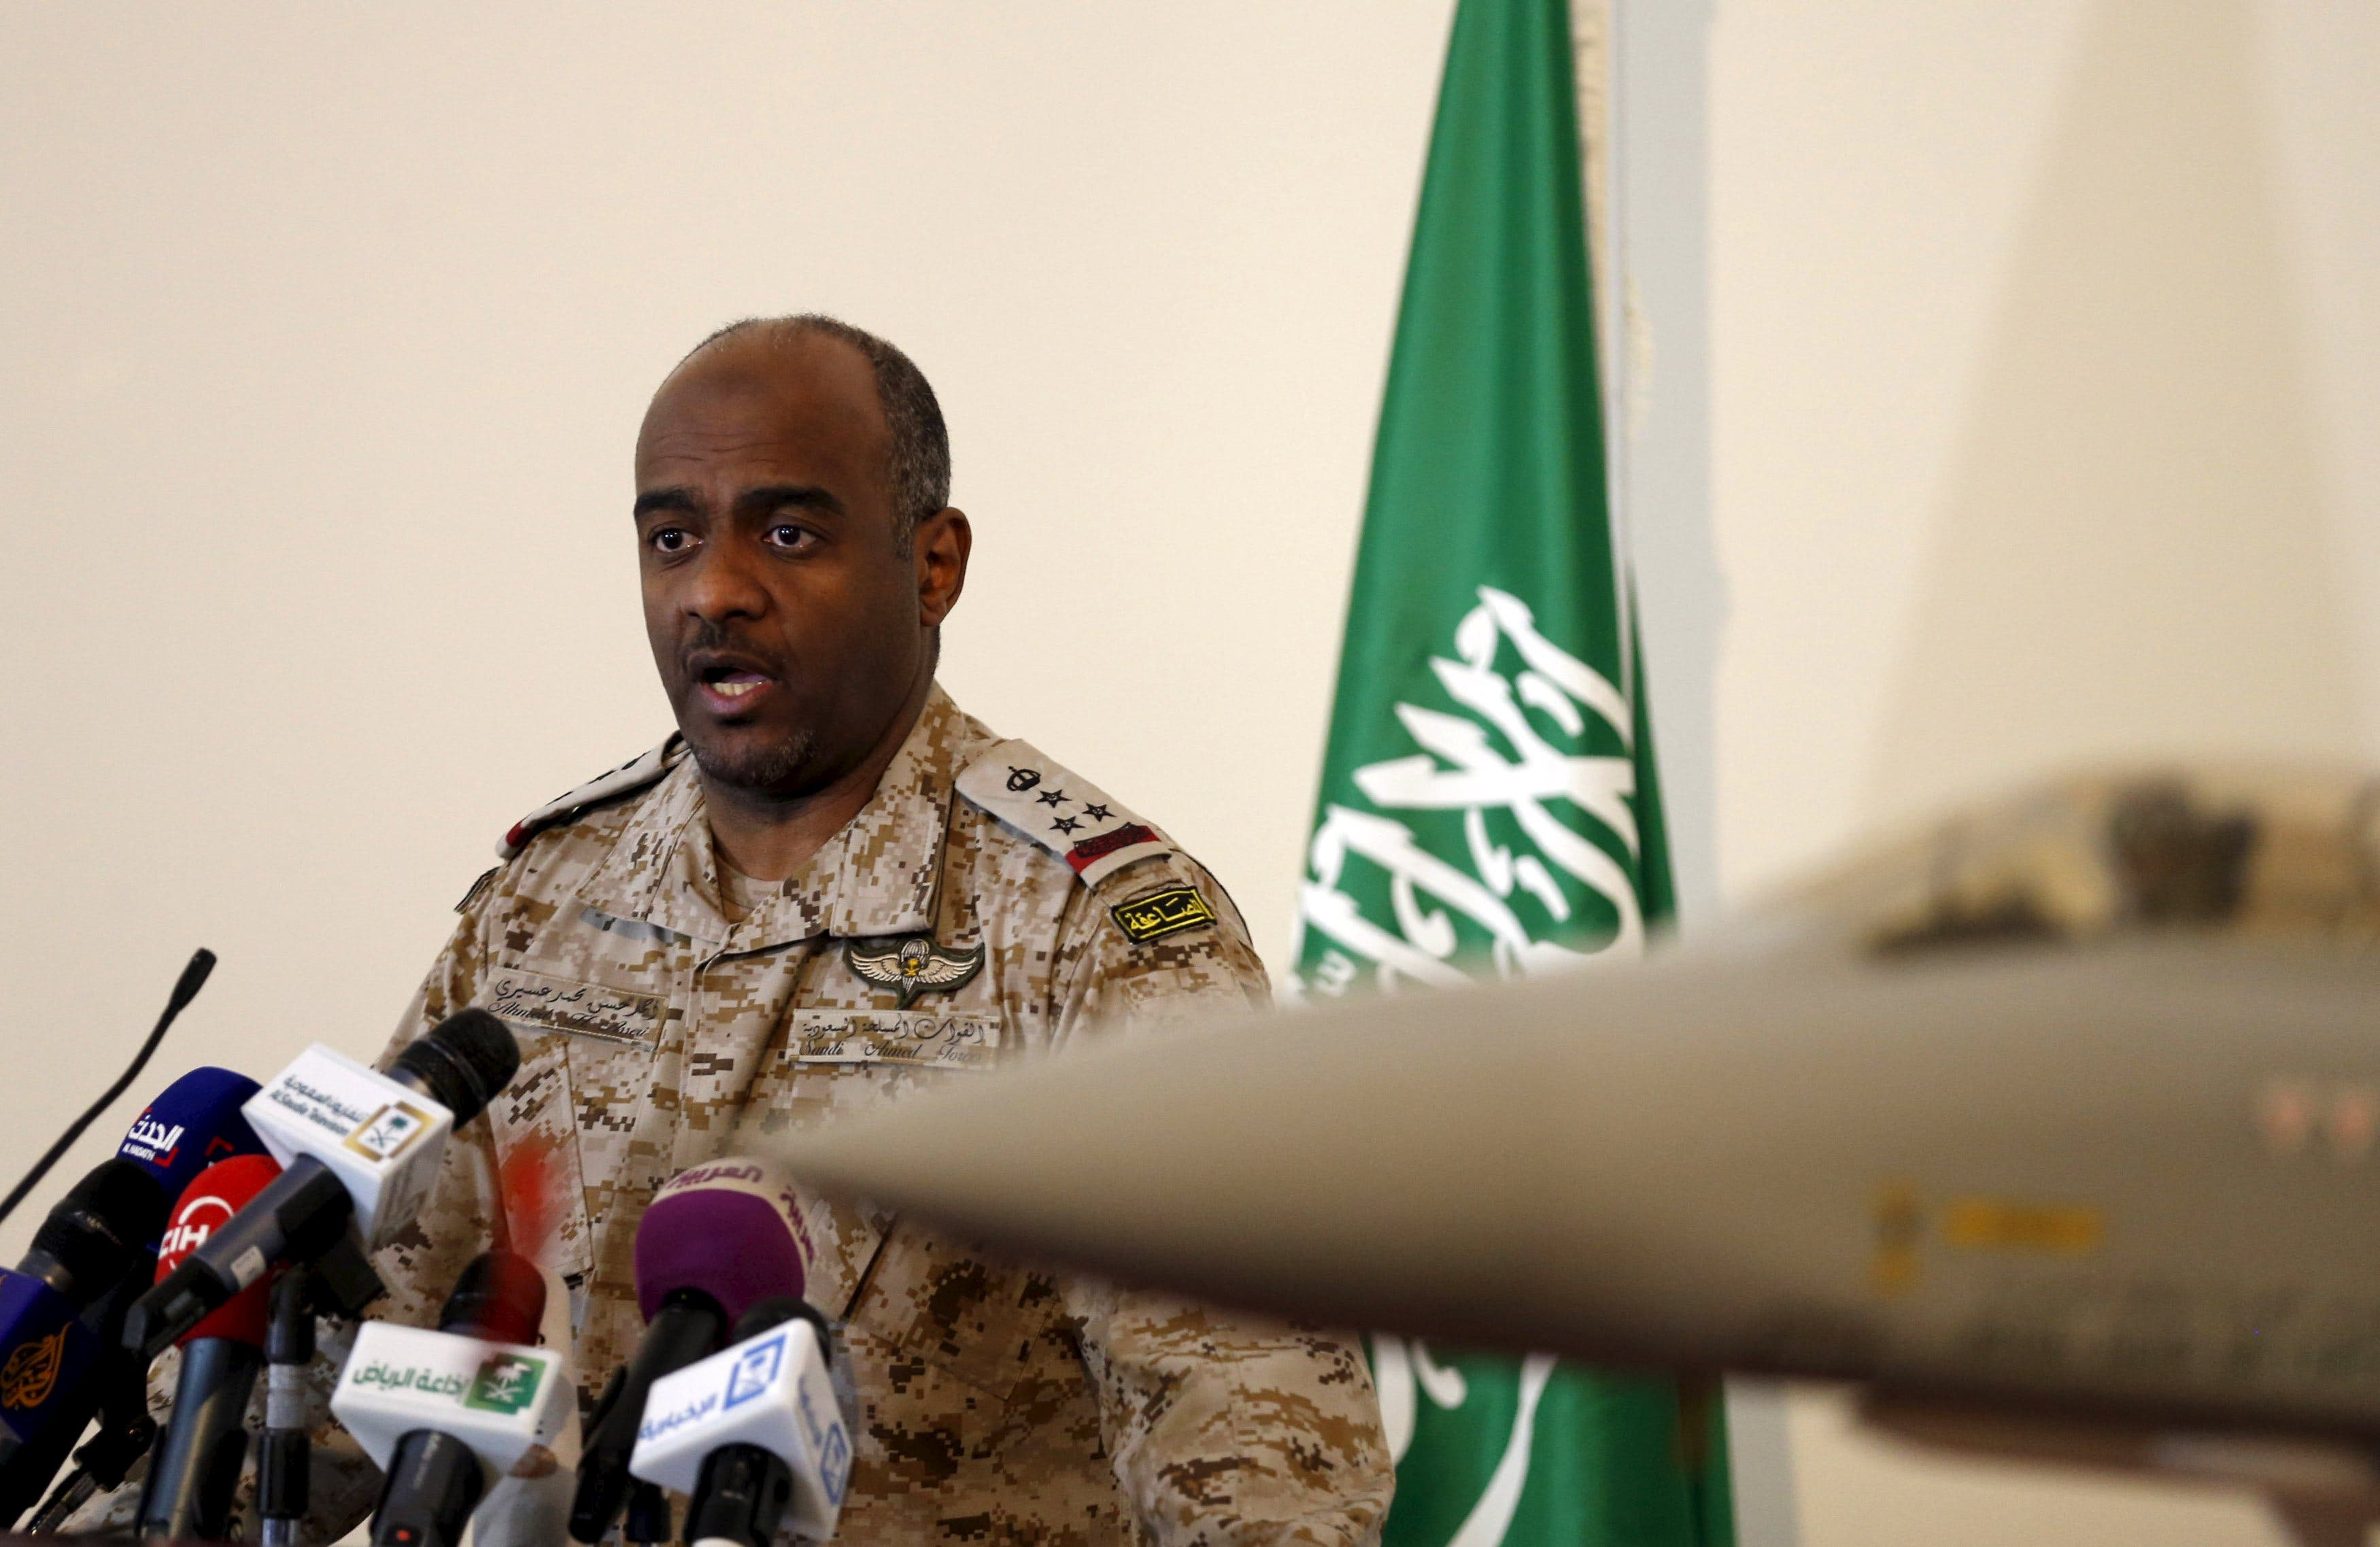 The official spokesman for the Saudi Ministry of Defense Gen. Ahmed Hassan al-Asiri speaks during news conference in Riyadh March 26, 2015. (Reuters)